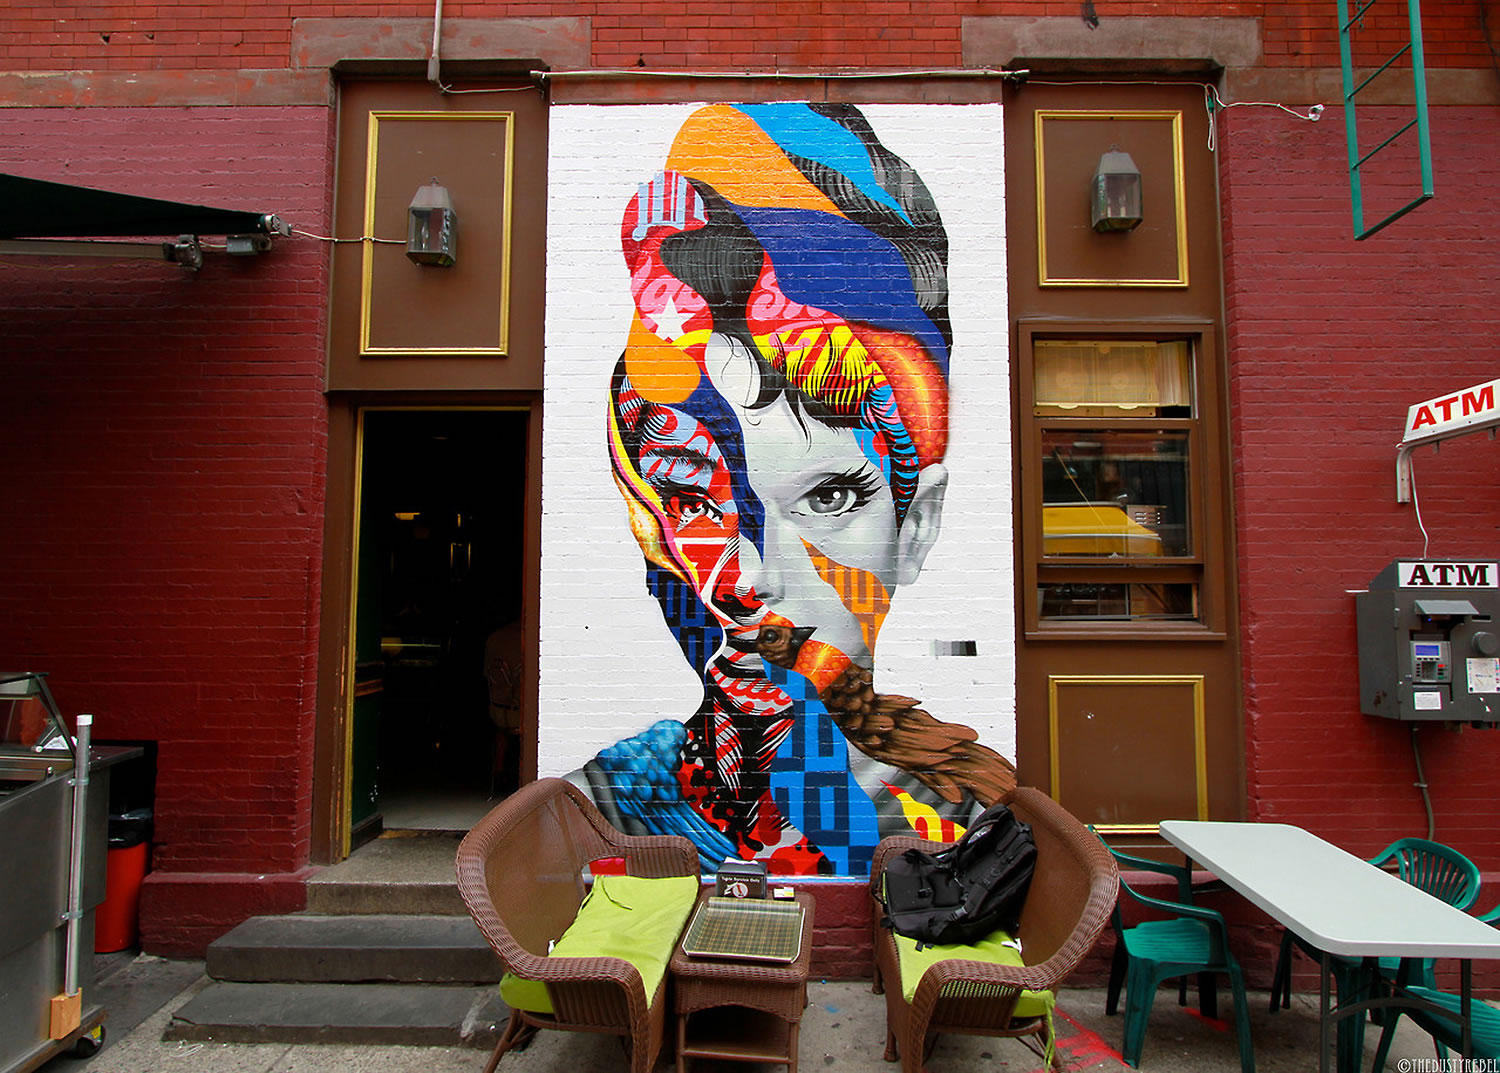 front view of audrey hepburn mural by Tristan Eaton